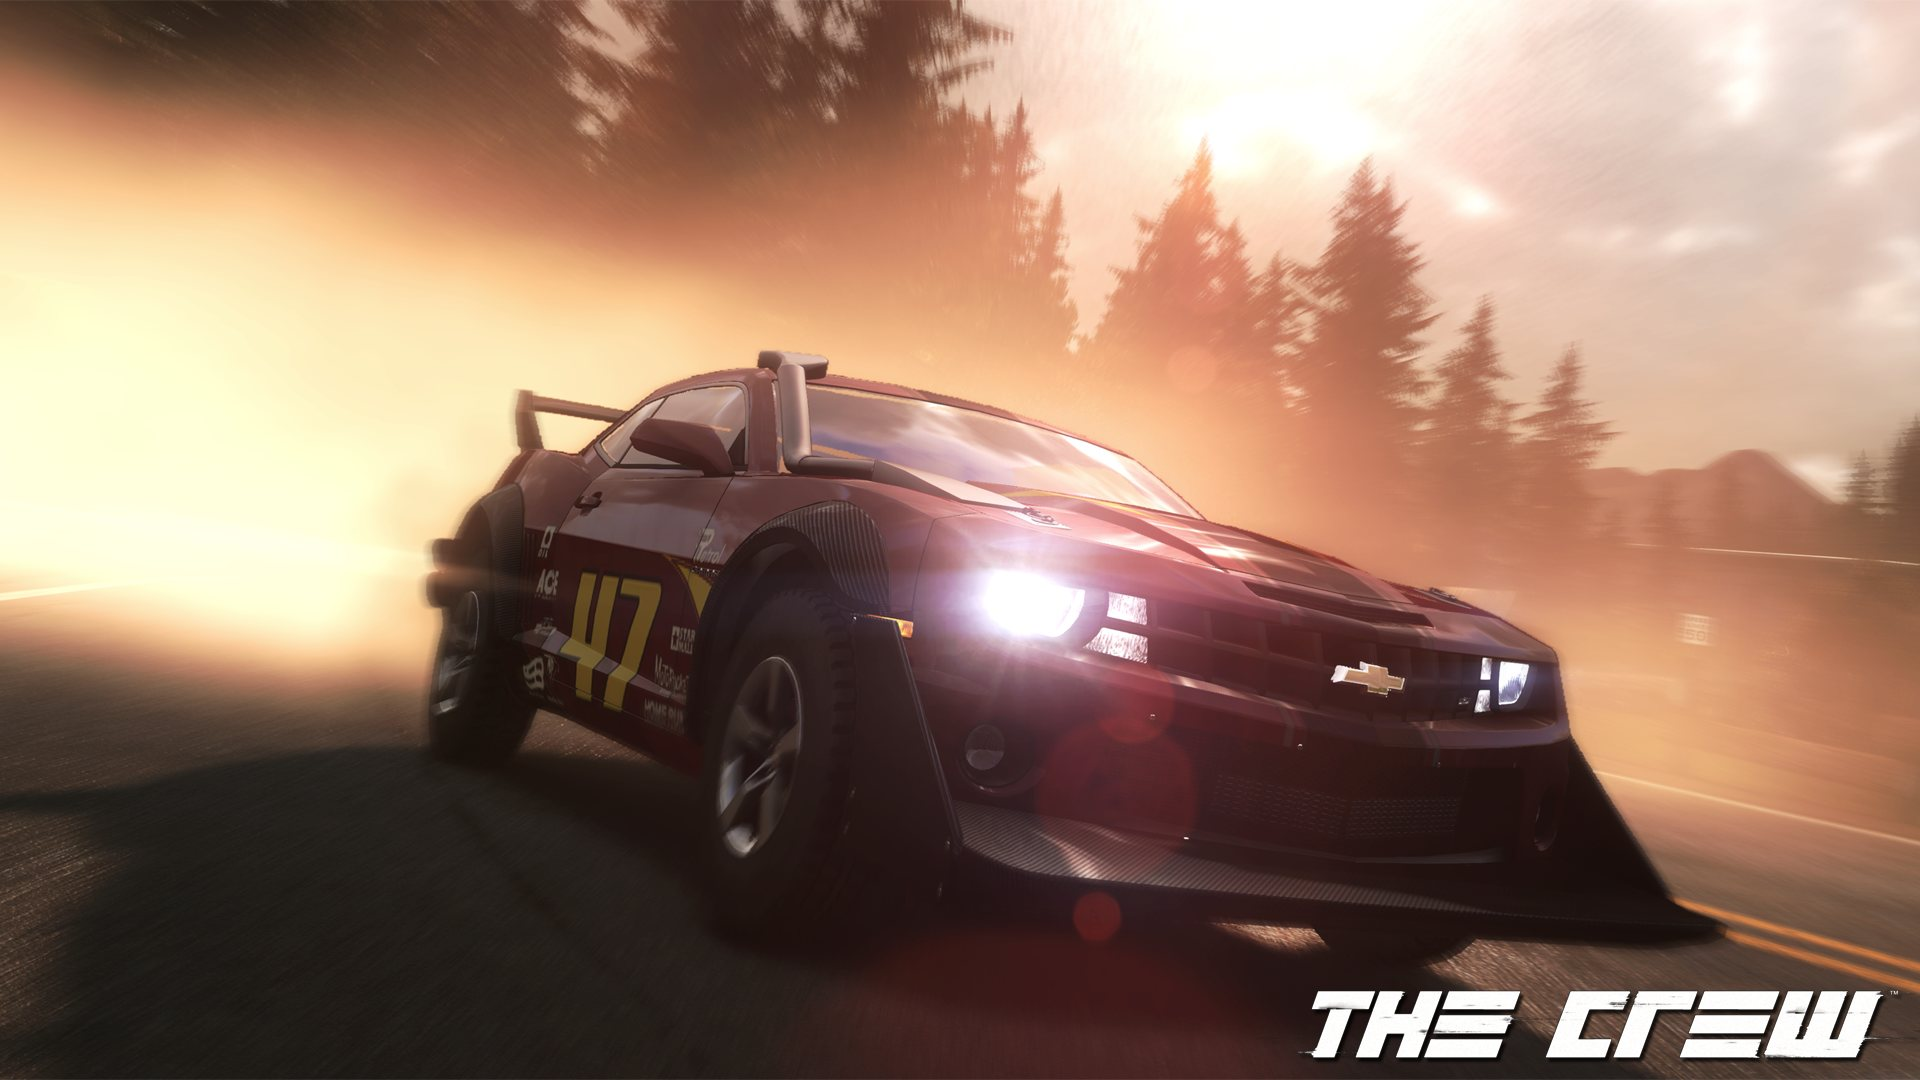 The Crew: Crimen y carreras ilegales